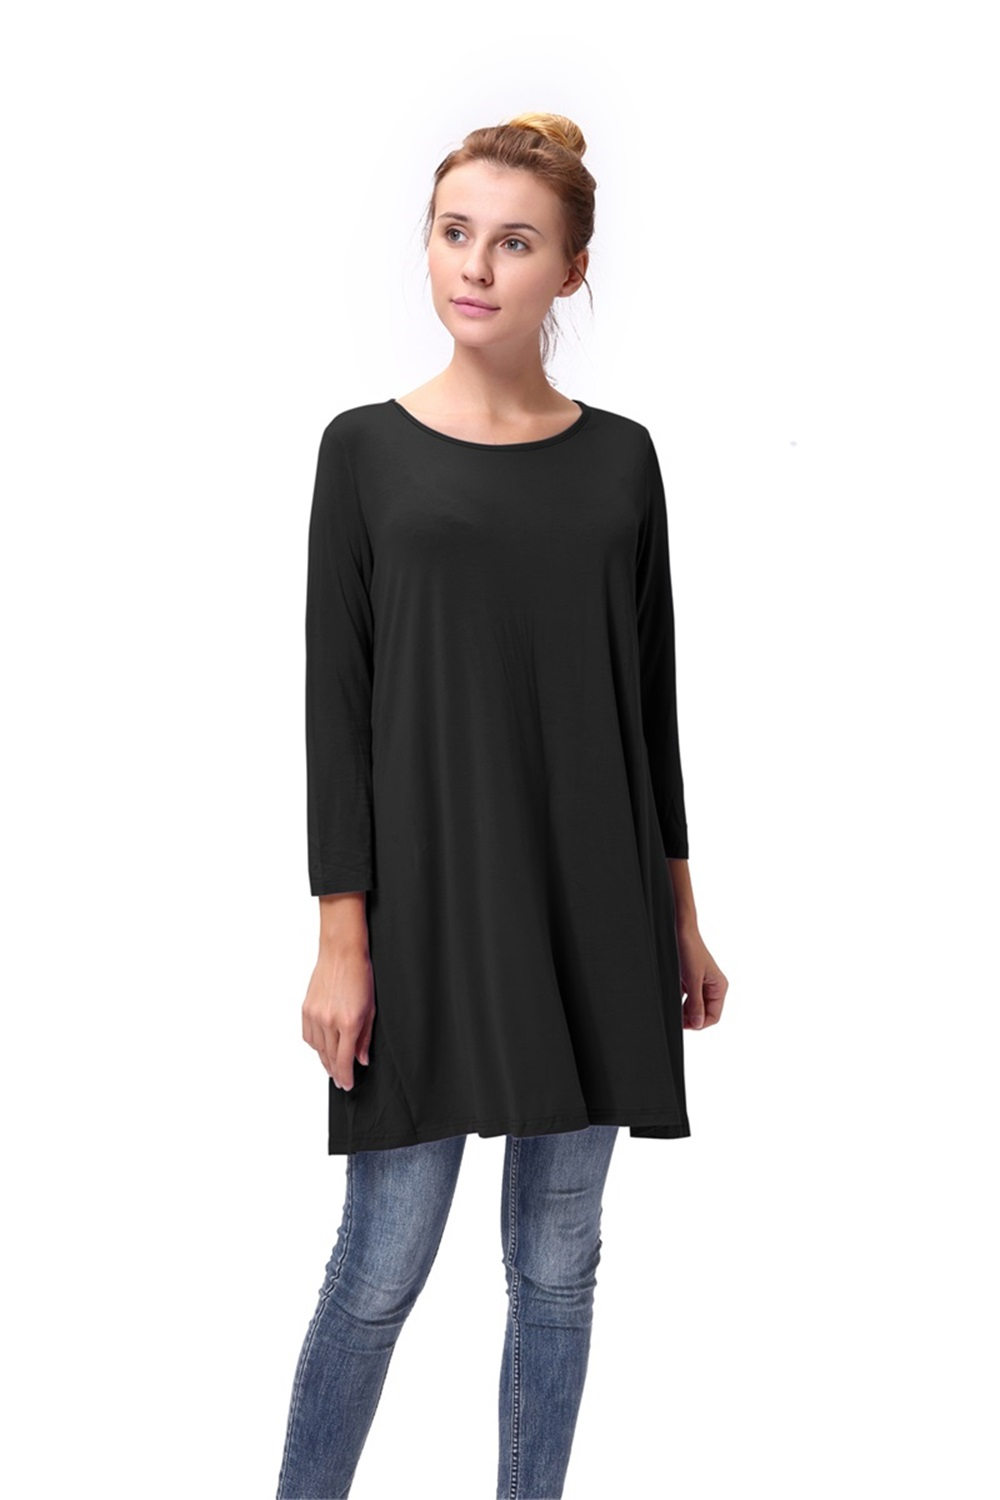 Women-Casual-Round-Neck-3-4-Long-Sleeve-Trapeze-Tunic-Top-Lady-Loose-Fit-Dress thumbnail 15